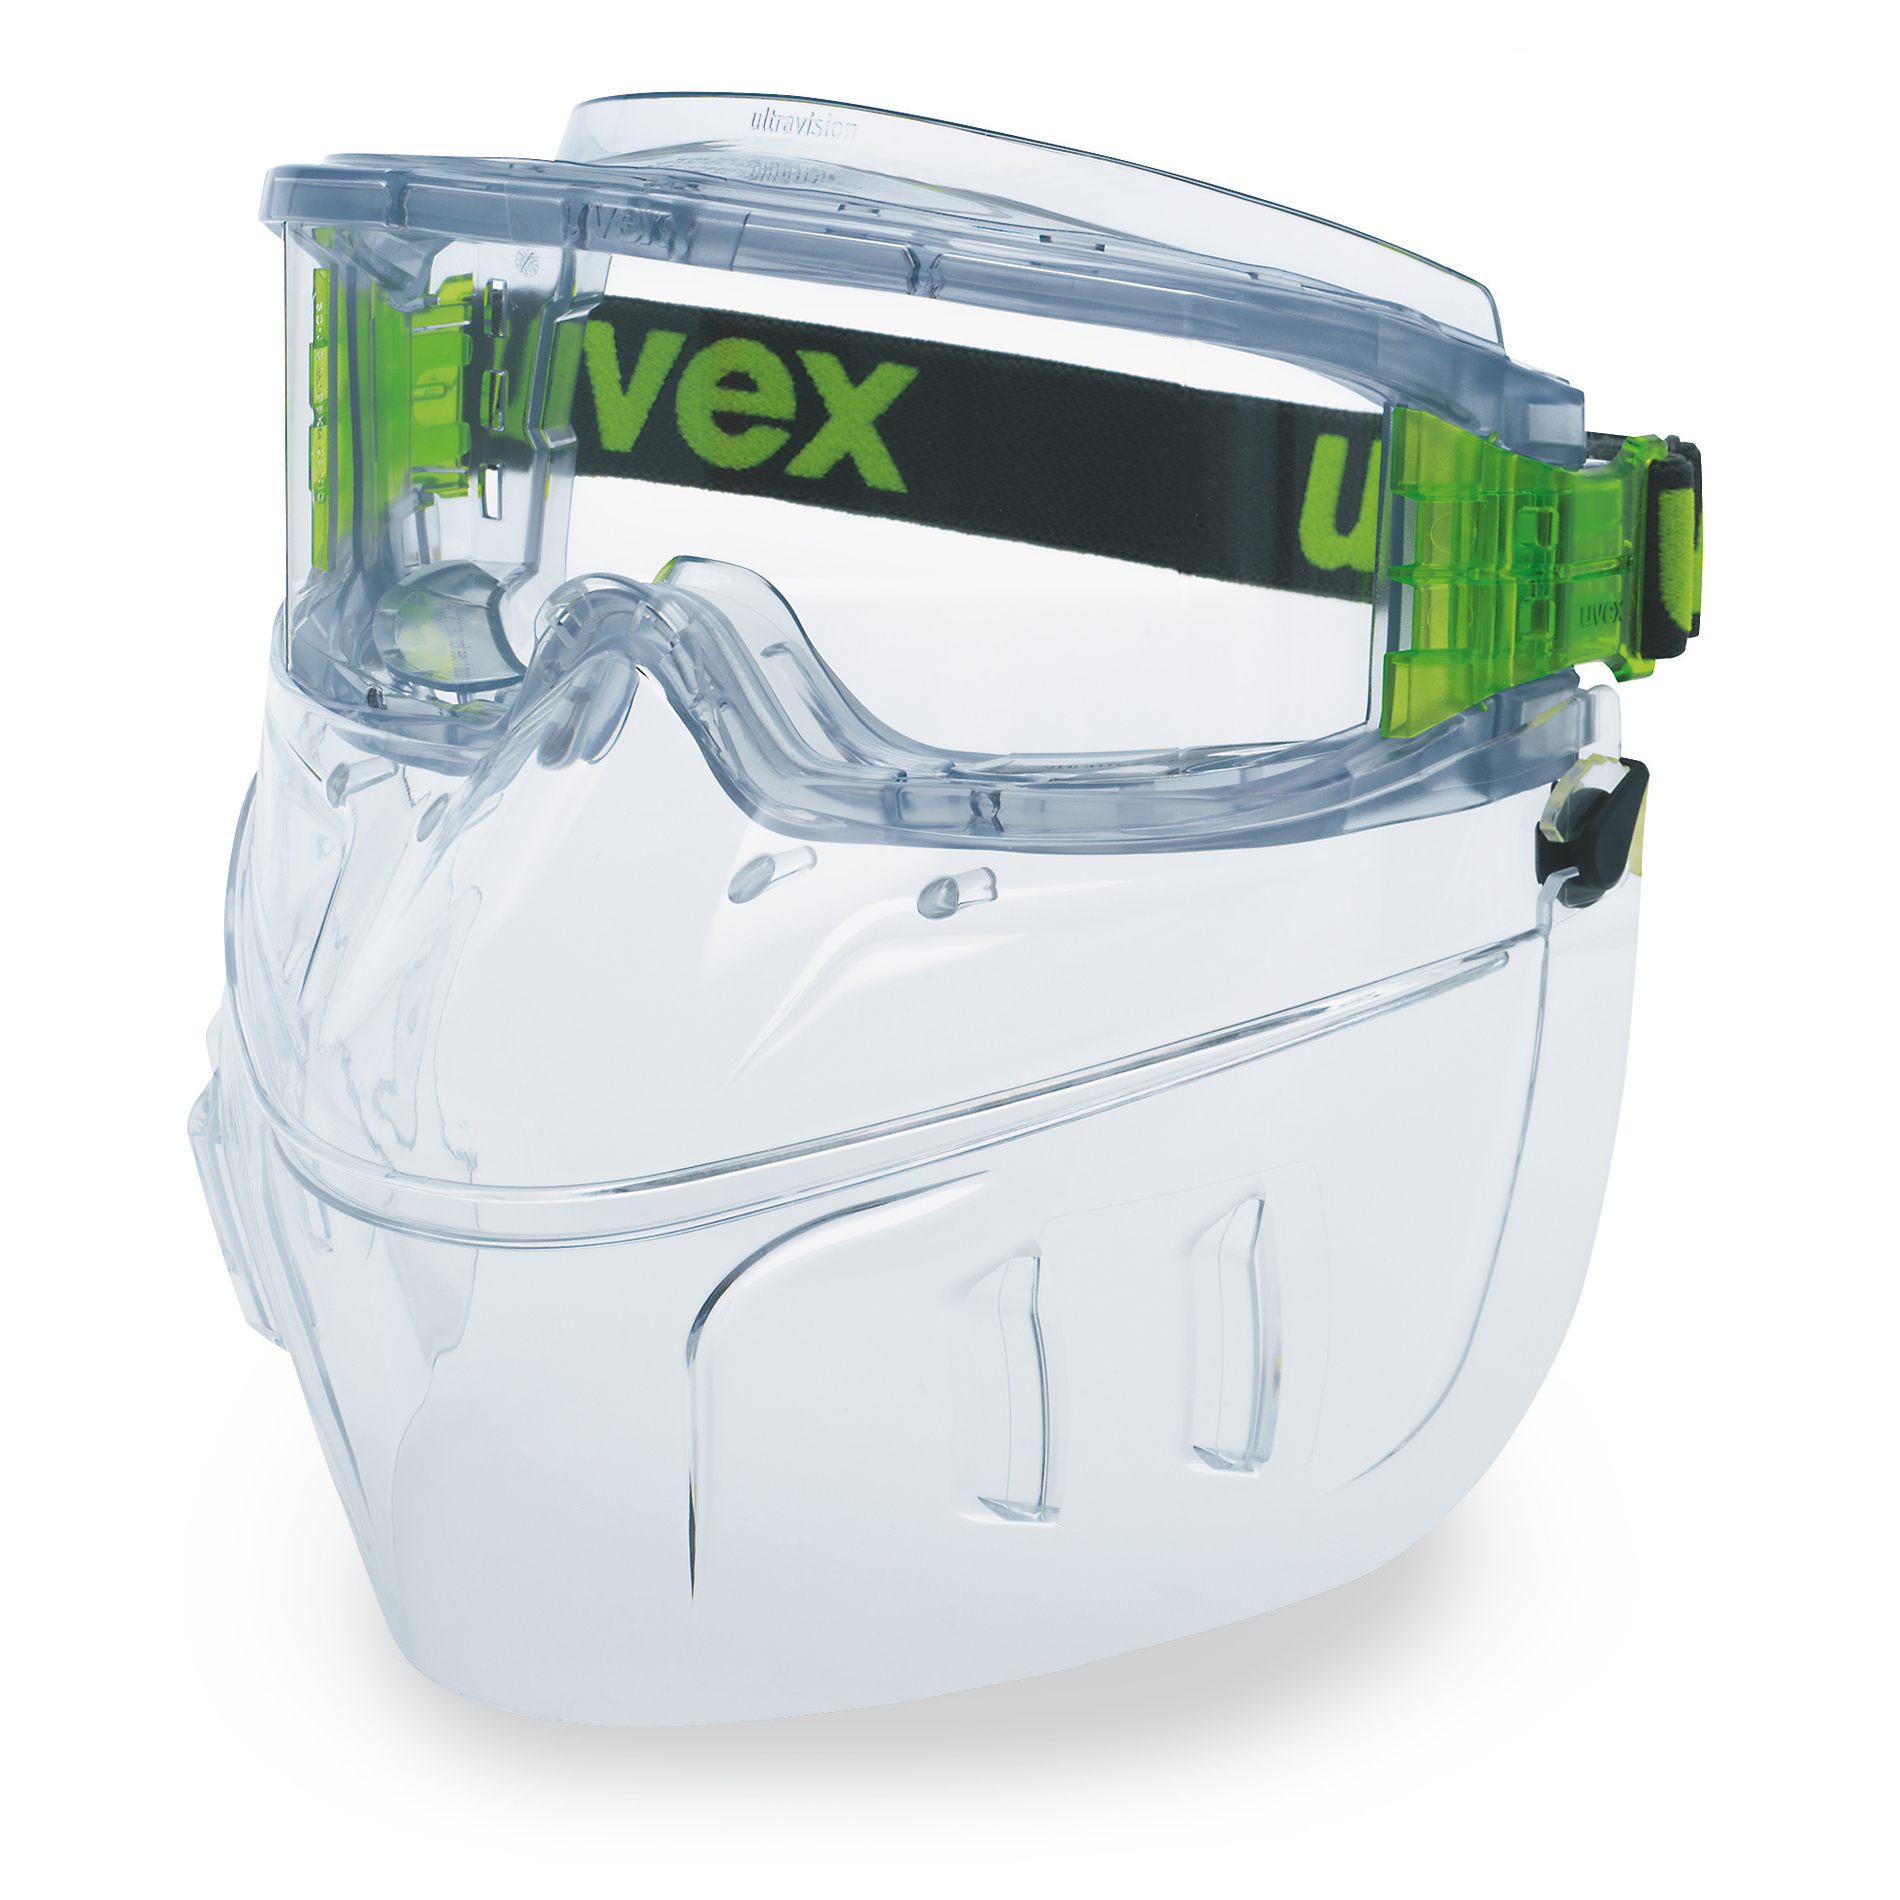 Lunettes de protection panoramiques uvex ultravision avec protection  respiratoire   Lunettes de protection   uvex safety cd76123ca900